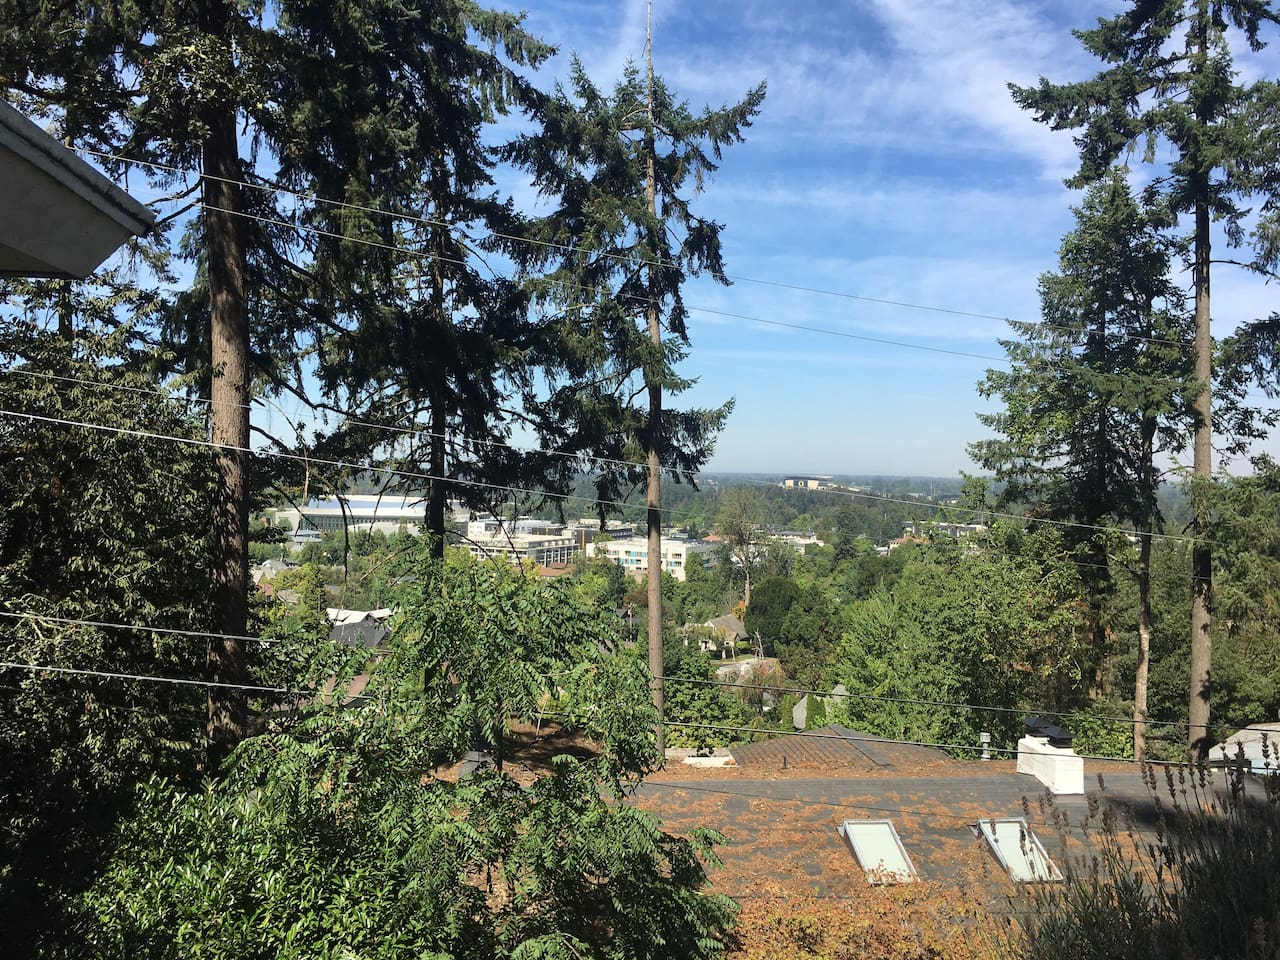 Wake up, roll over and have a look at that view. The campus is right below you, and historic Hendricks Park just above. In fact it's right behind the house!